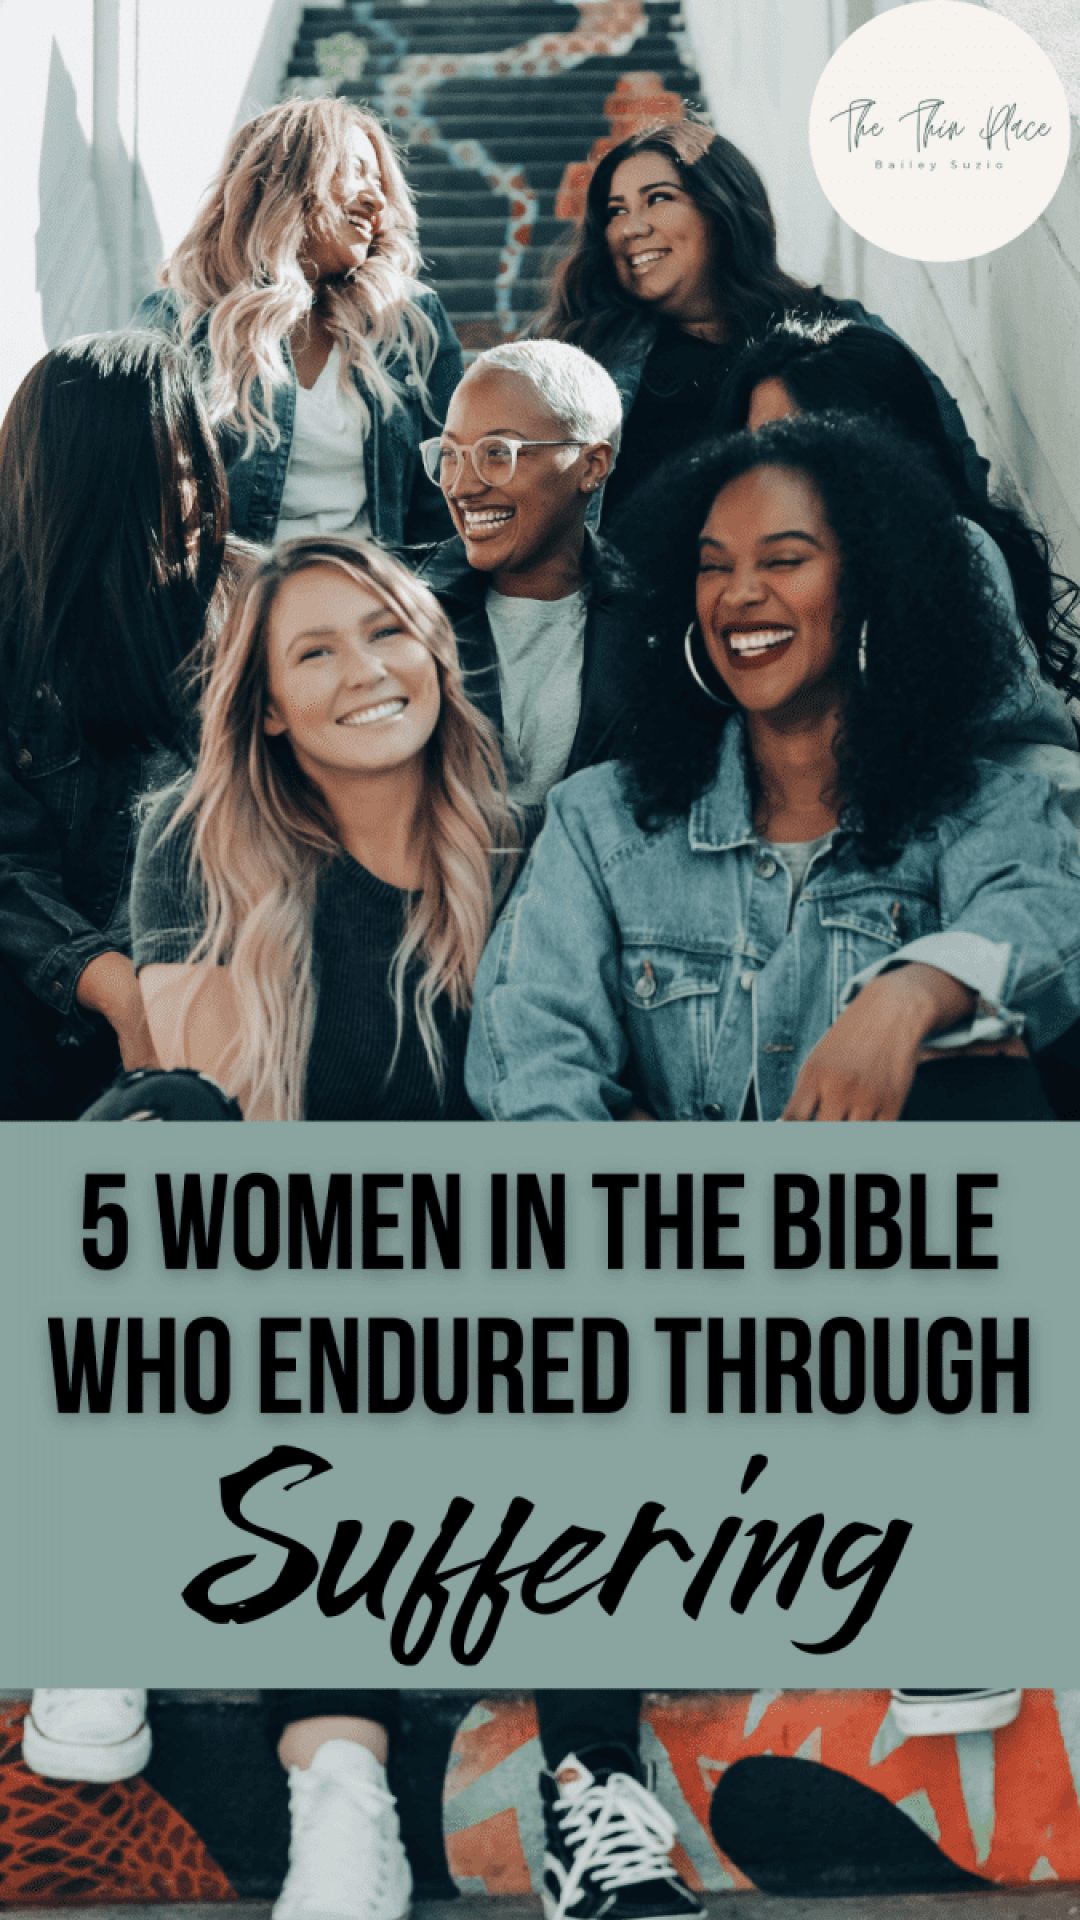 These 5 Women in the Bible who endured through suffering encourage me and other women in their trials today #womeninthebible #devotional #biblicalwomen #christianliving #christianwoman